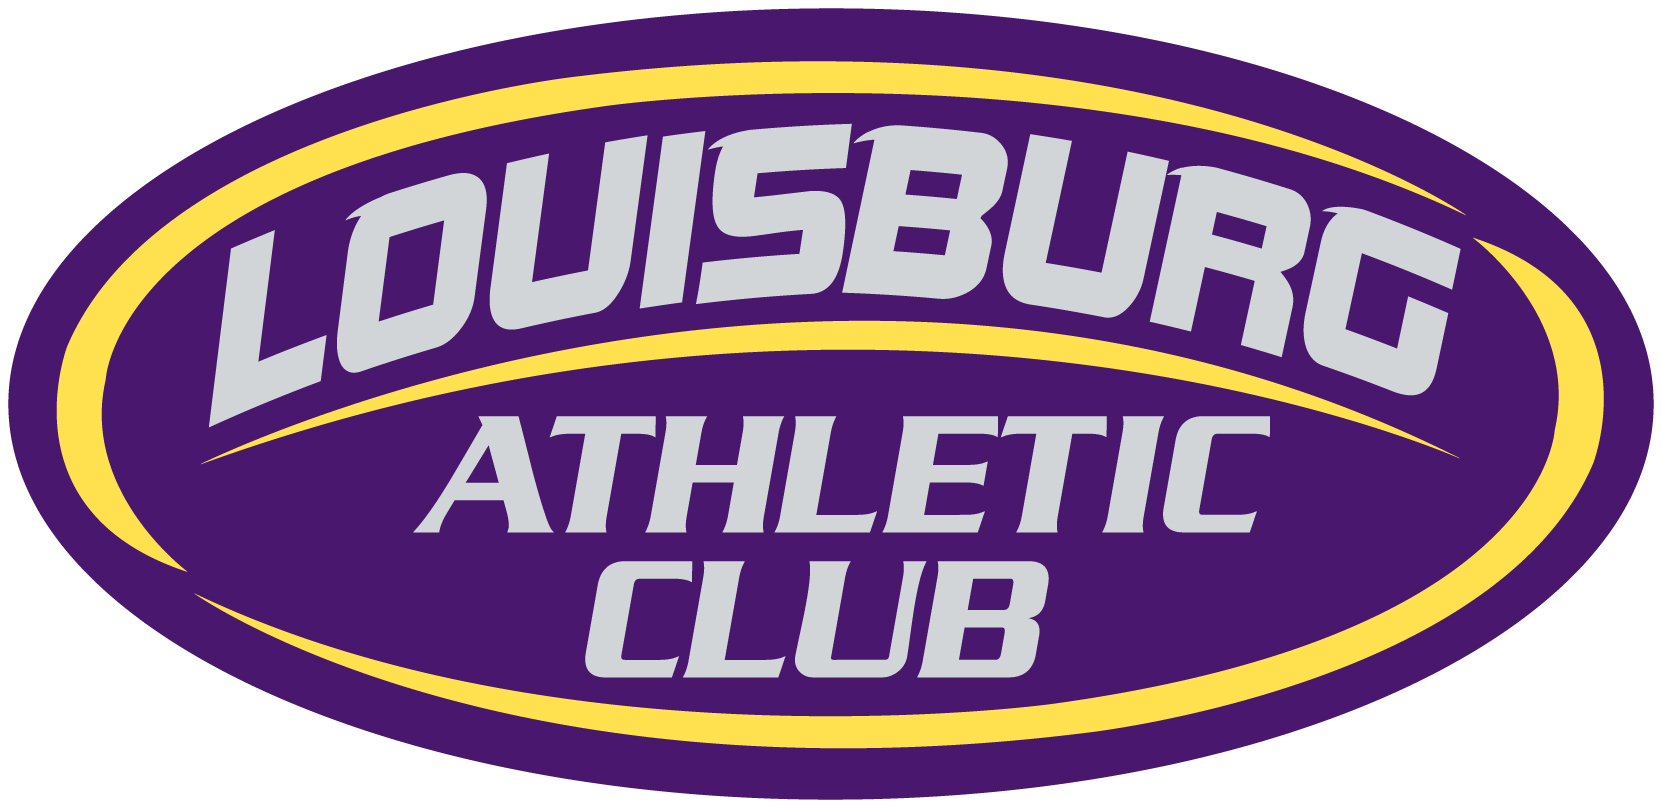 Louisburg Athletic Club Photo